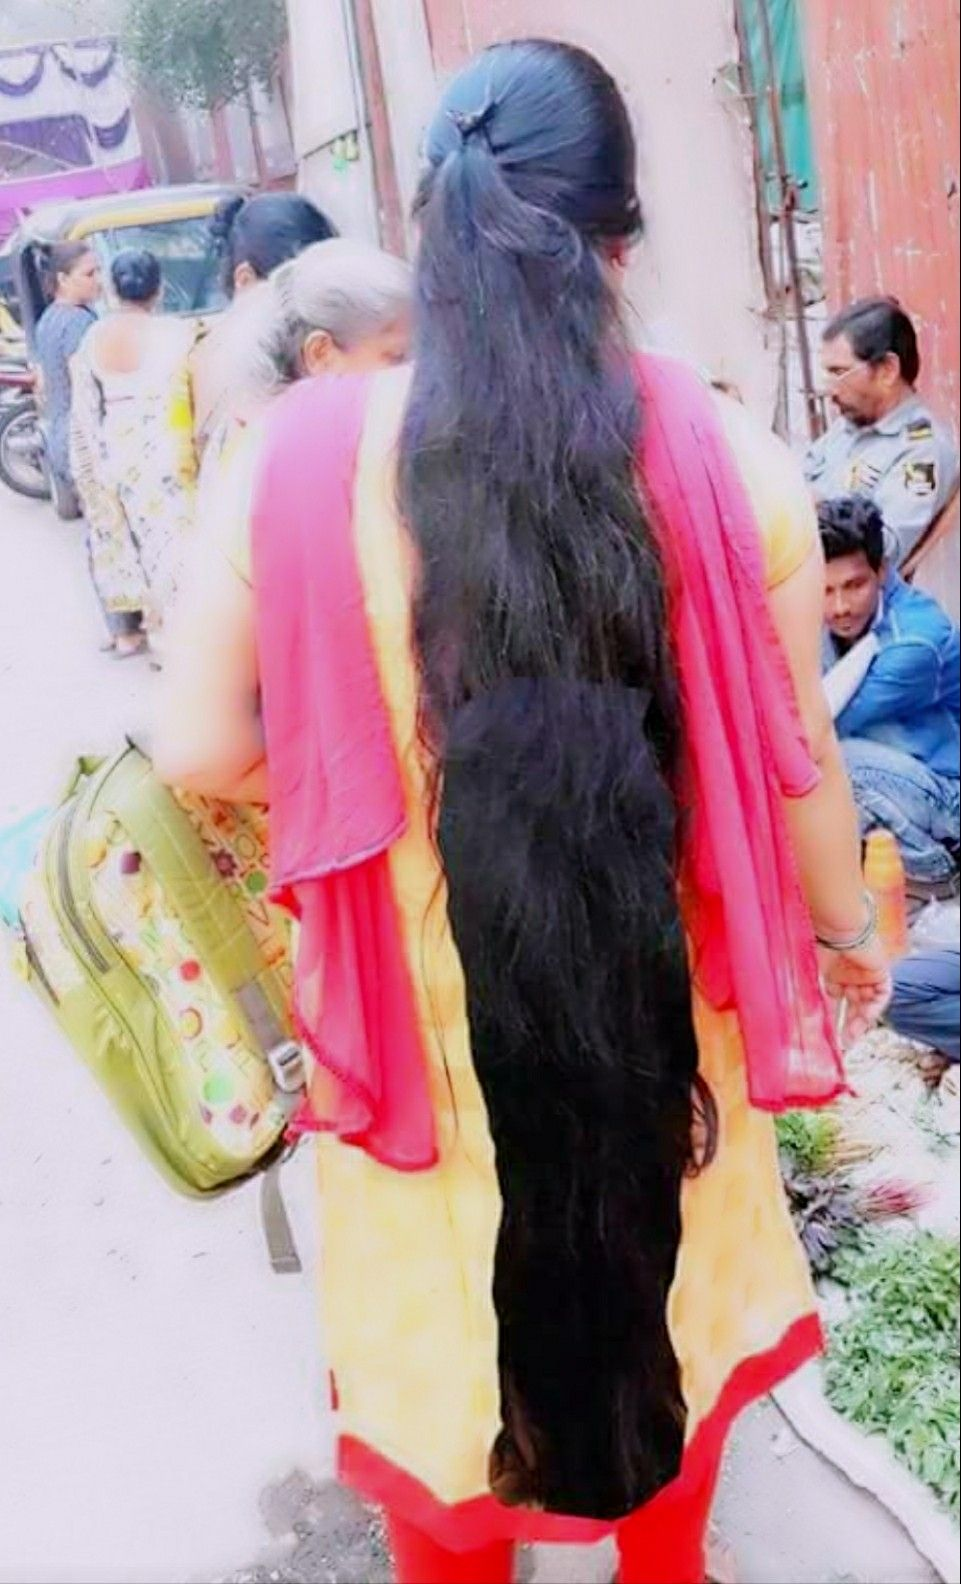 Pin by mohamed sajjid on Ponytail | Long hair ponytail, Long indian hair, High ponytail hairstyles